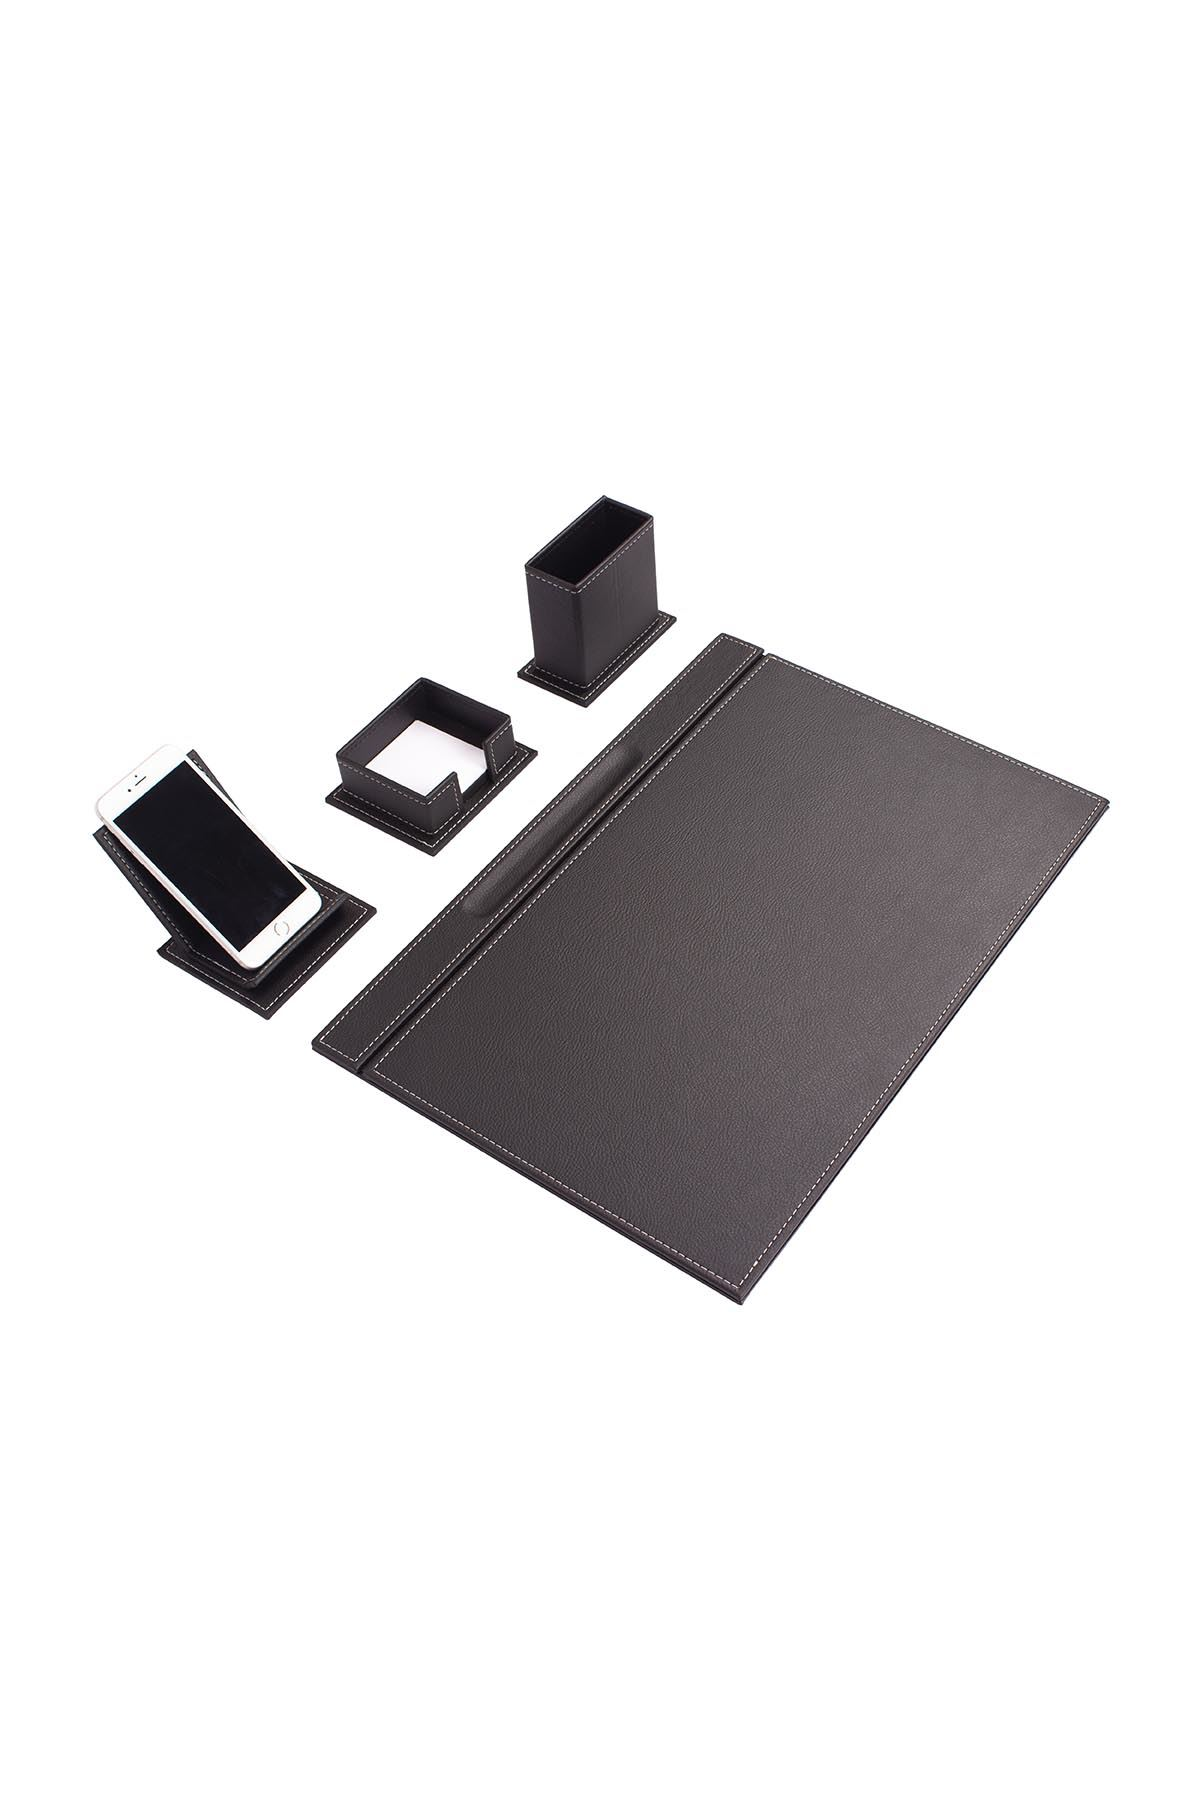 Vega Leather Desk Set Black 4 Accessories